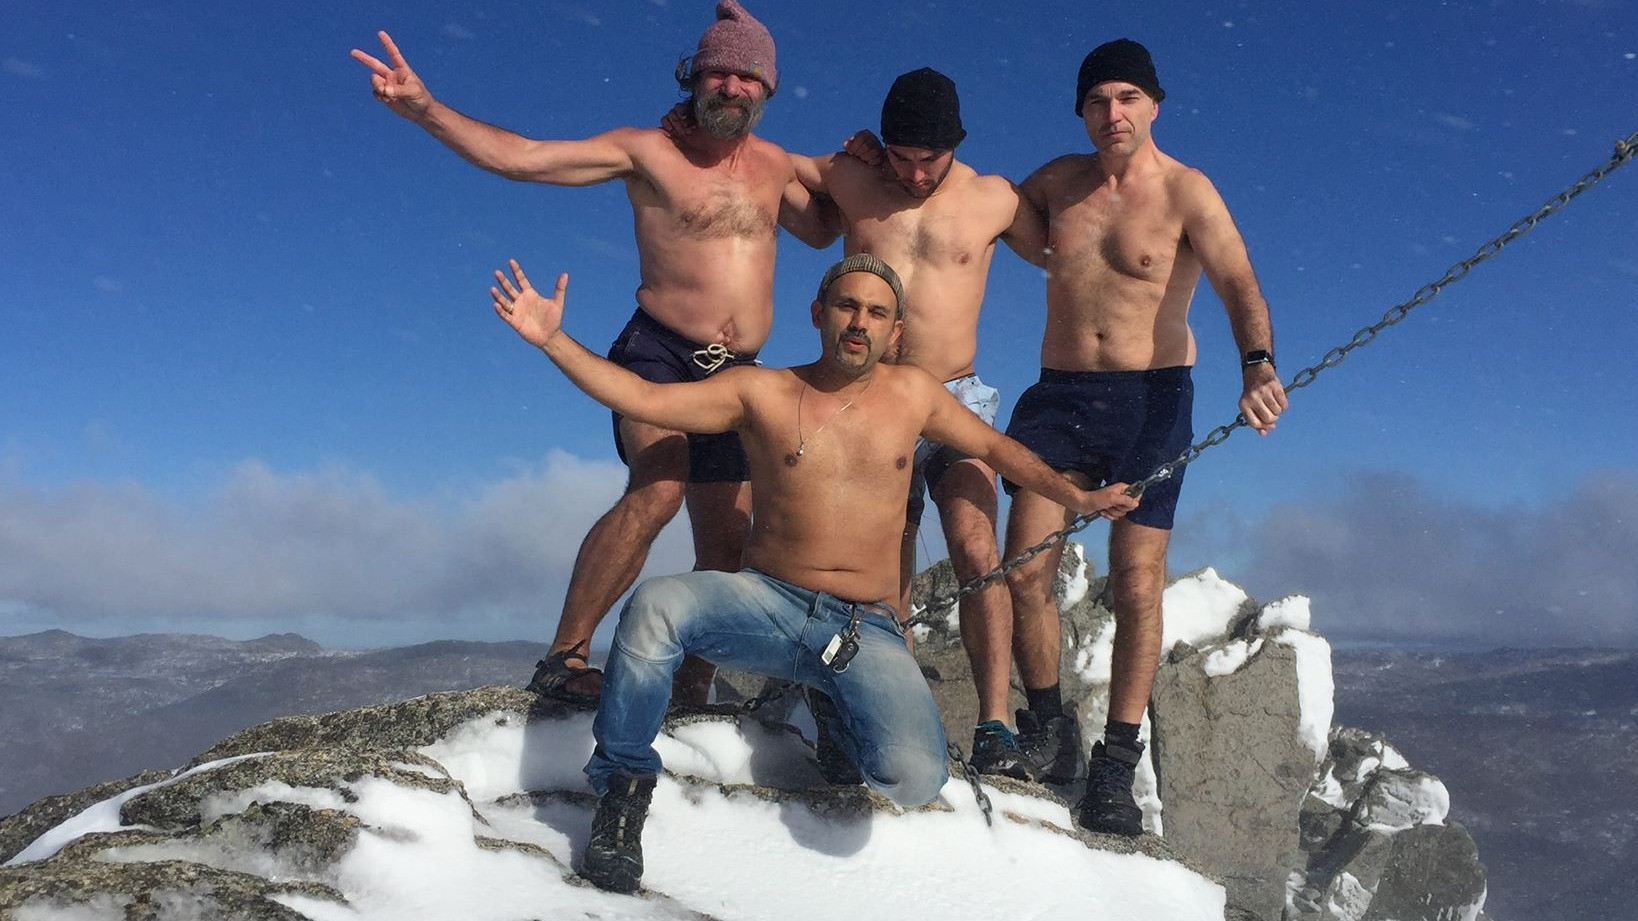 Image 2 of 18 - Experience the Wim Hof Method to get an impression of  at